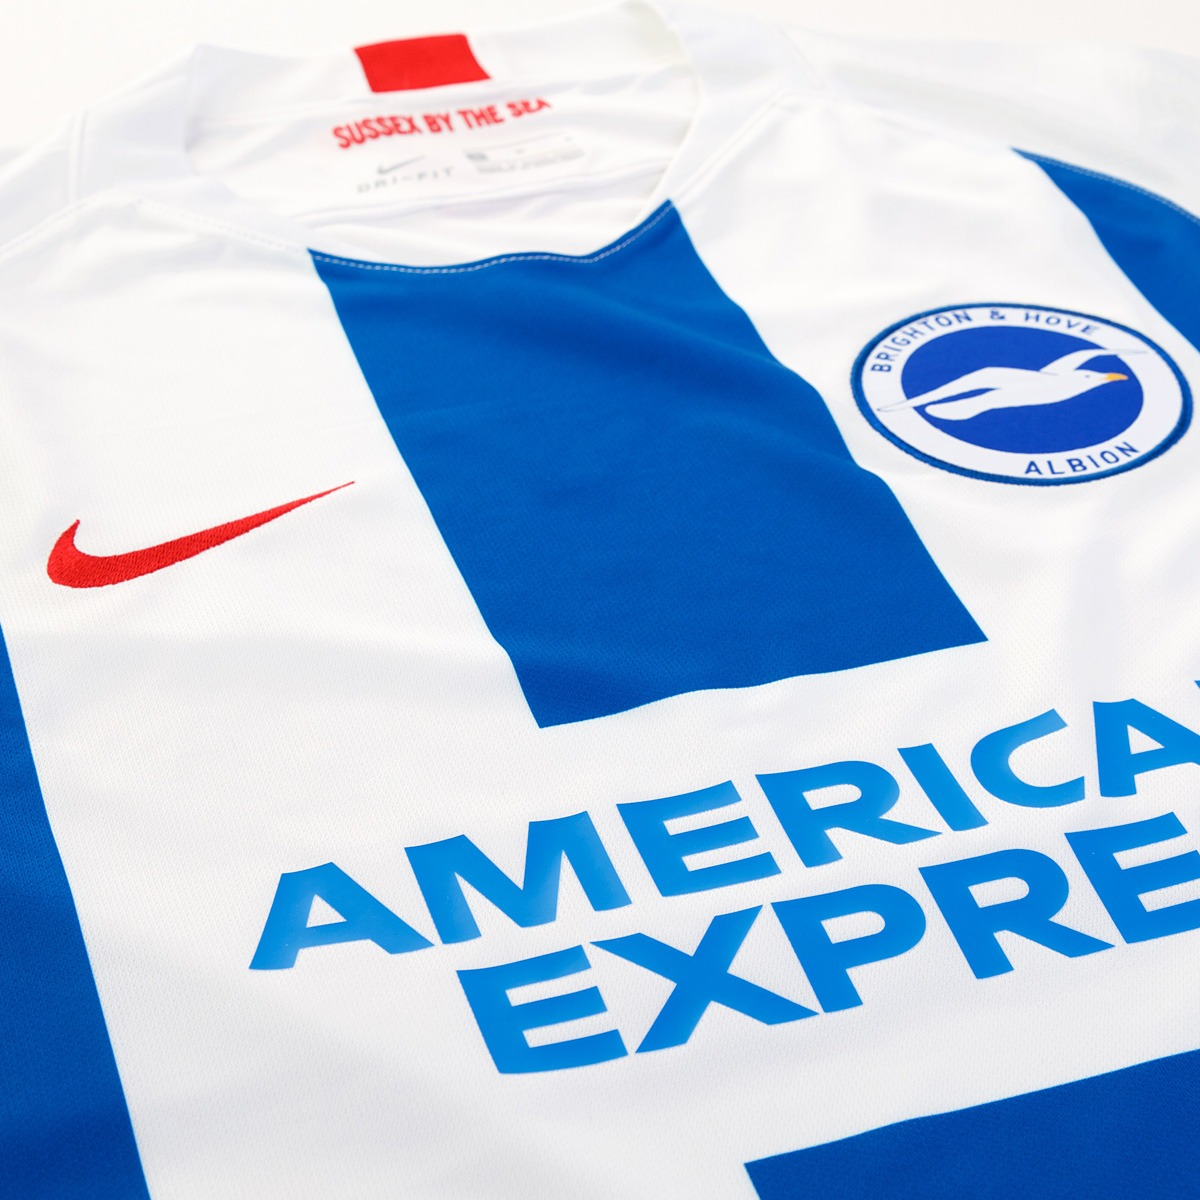 Click to enlarge image brighton hove albion 18 19 nike home kit a.jpg ·  Click to enlarge image brighton hove albion 18 19 nike home kit b.jpg ... d7819ab66